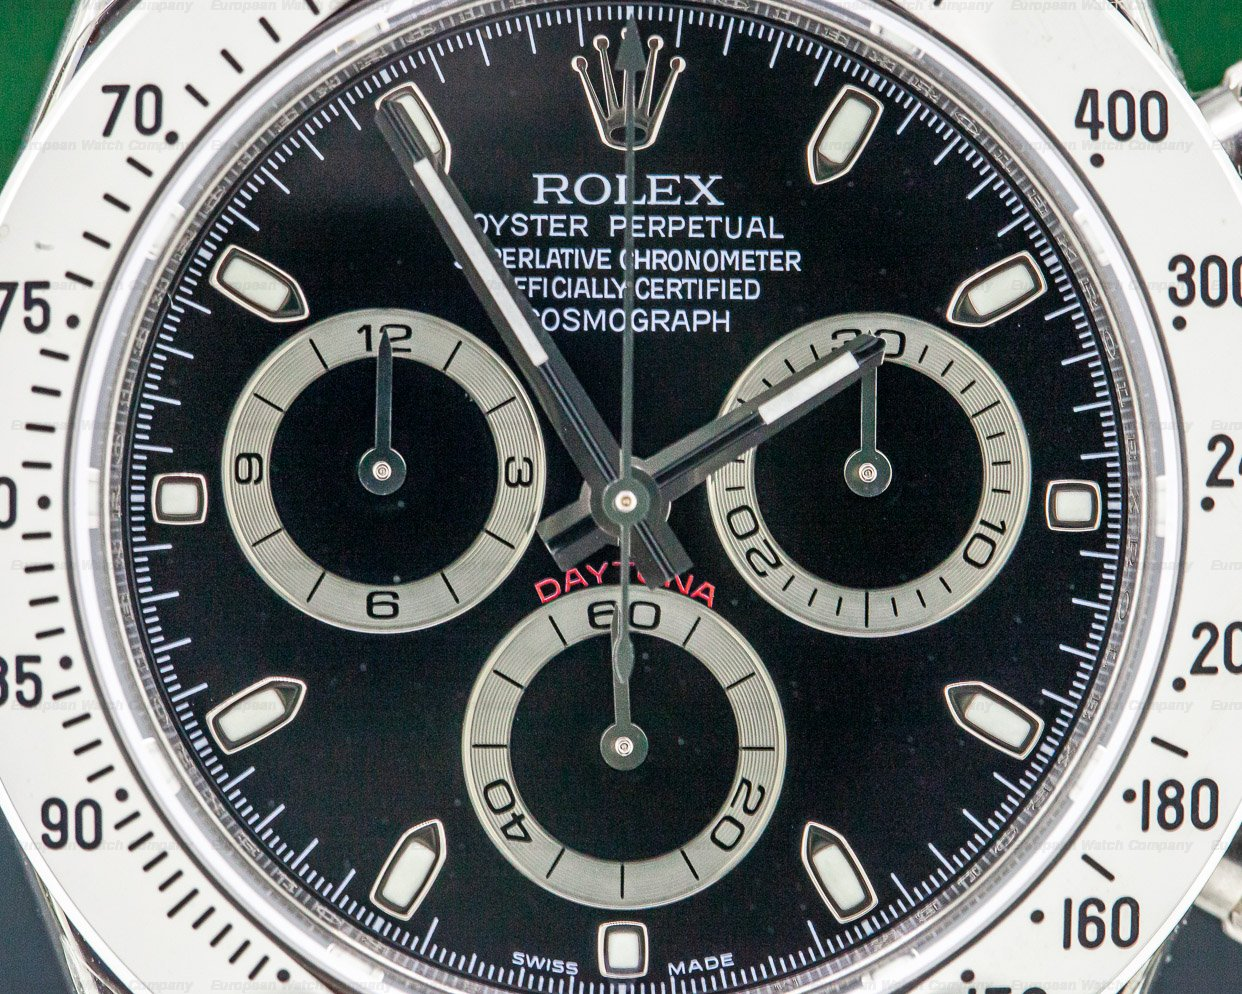 Rolex 116520 Daytona Black Dial SS NEW OLD STOCK